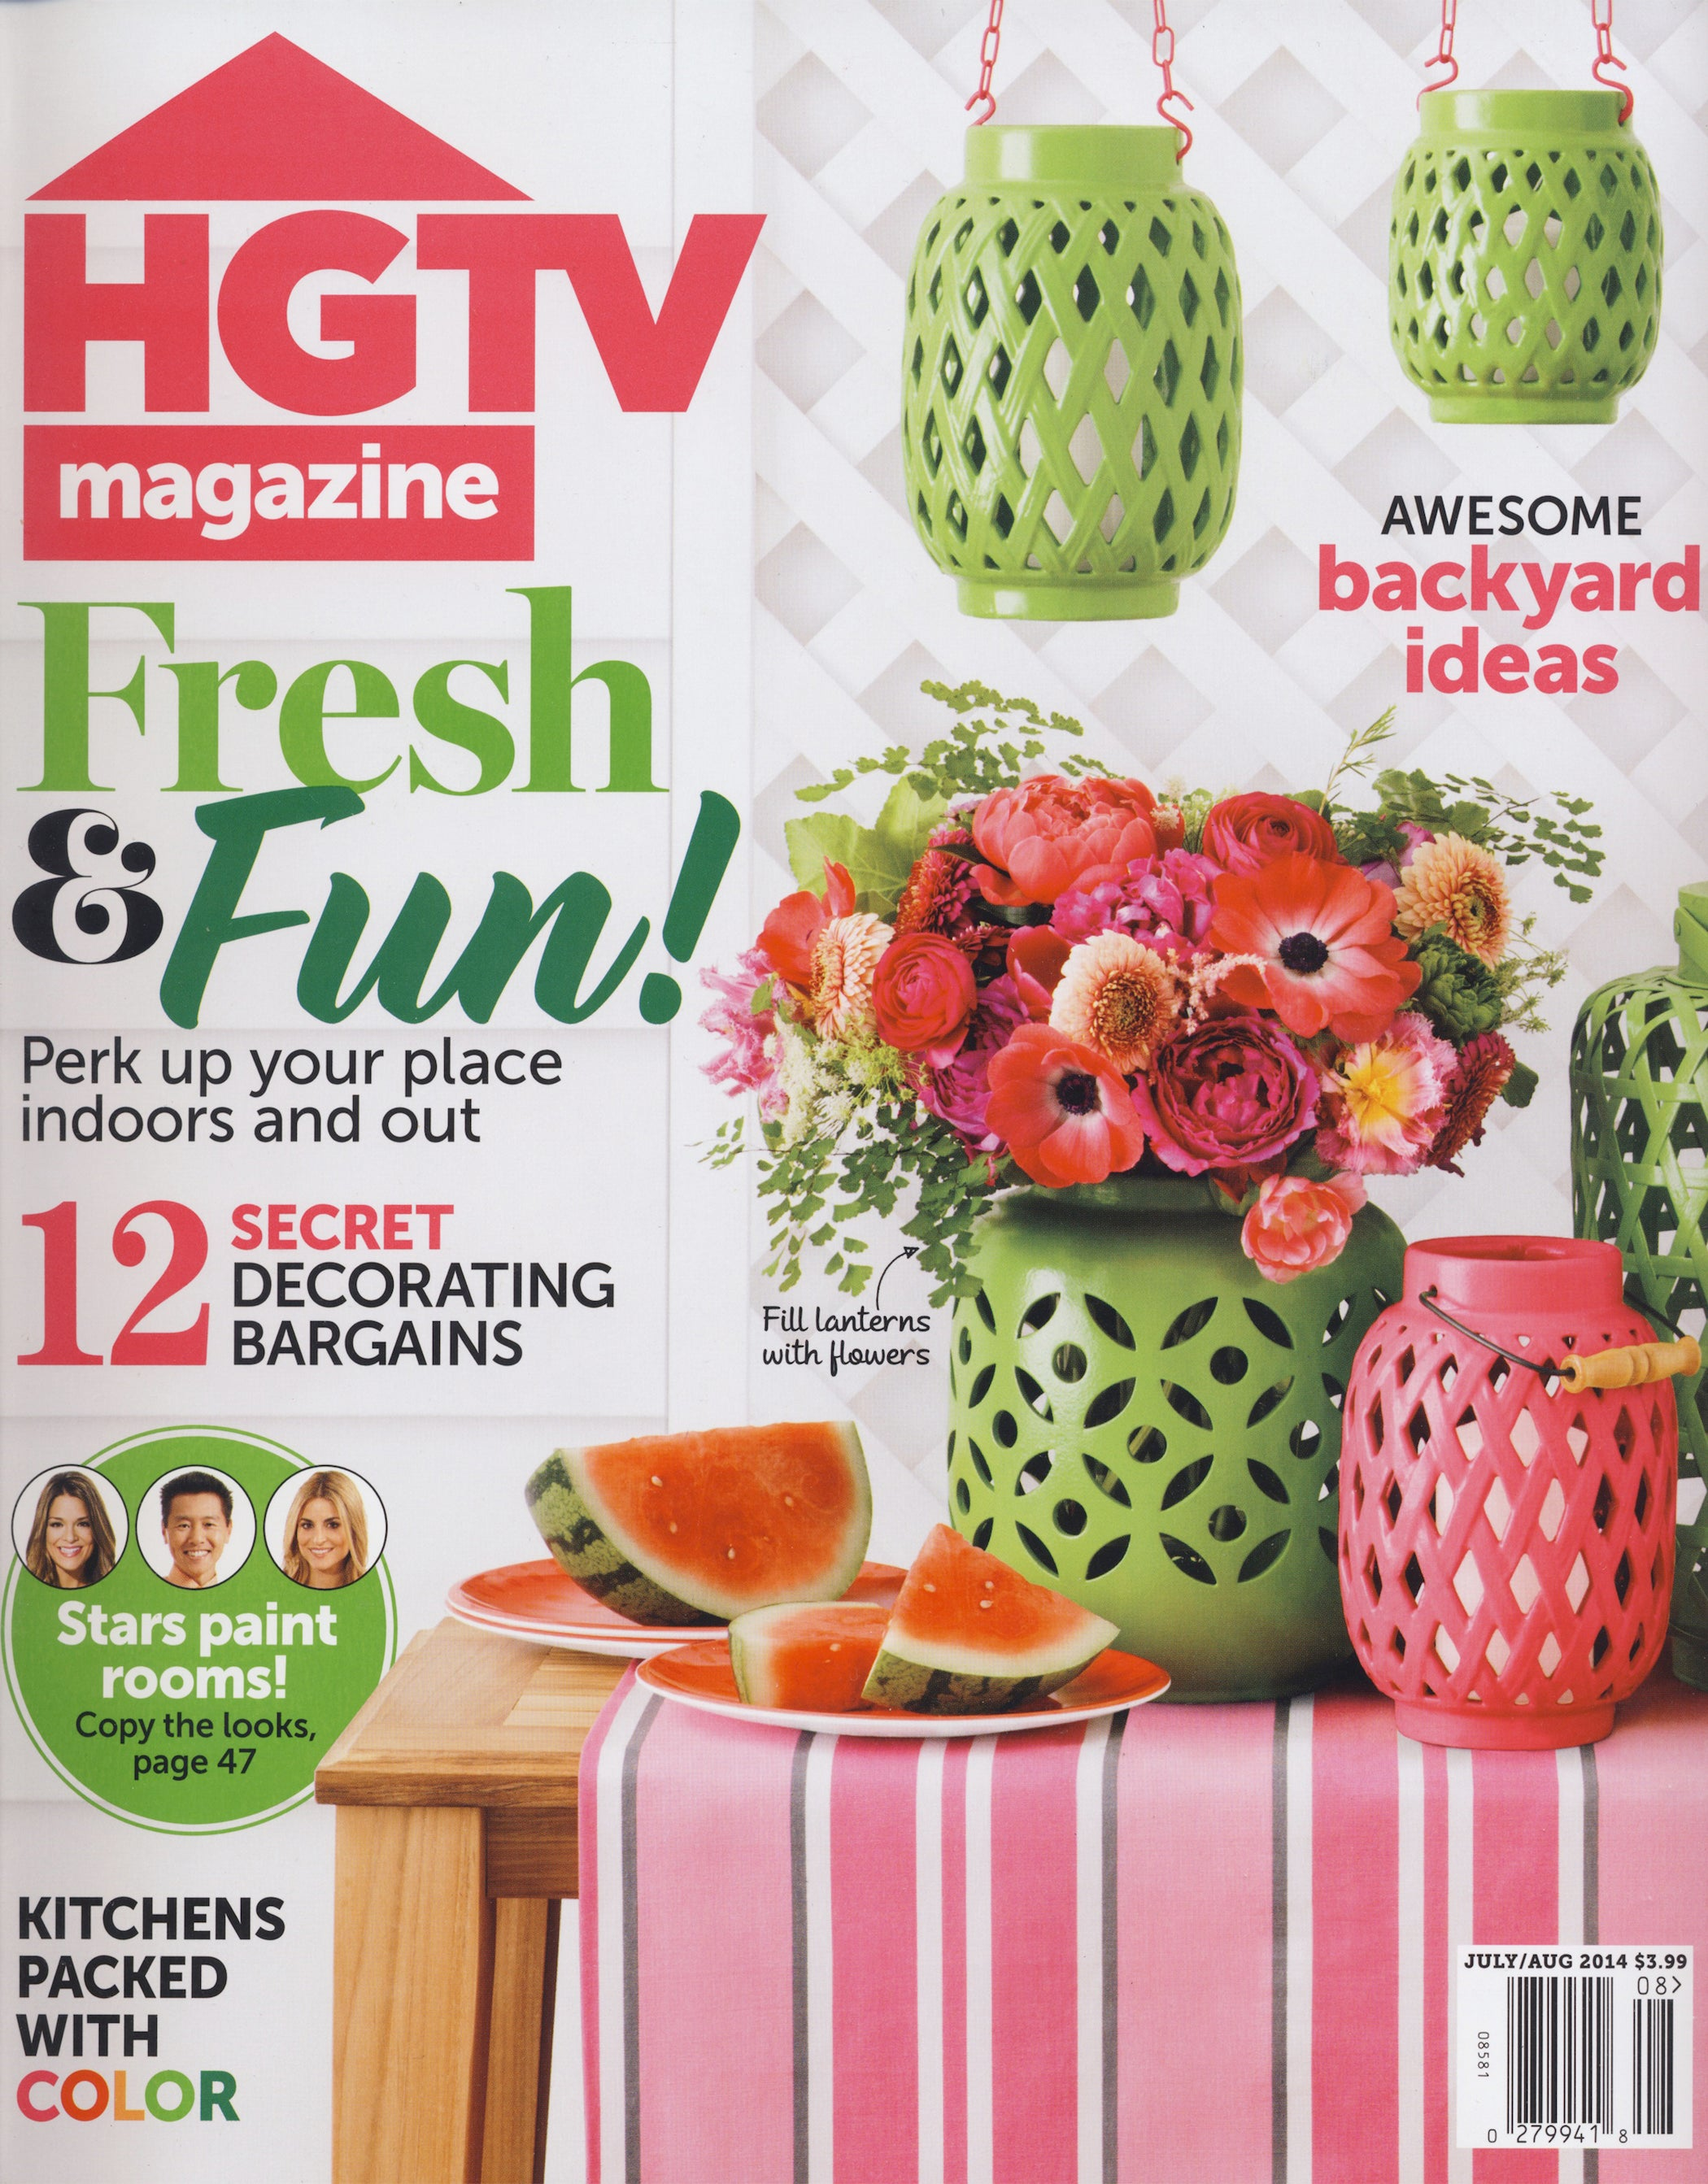 HGTV Magazine, July/Aug 2014